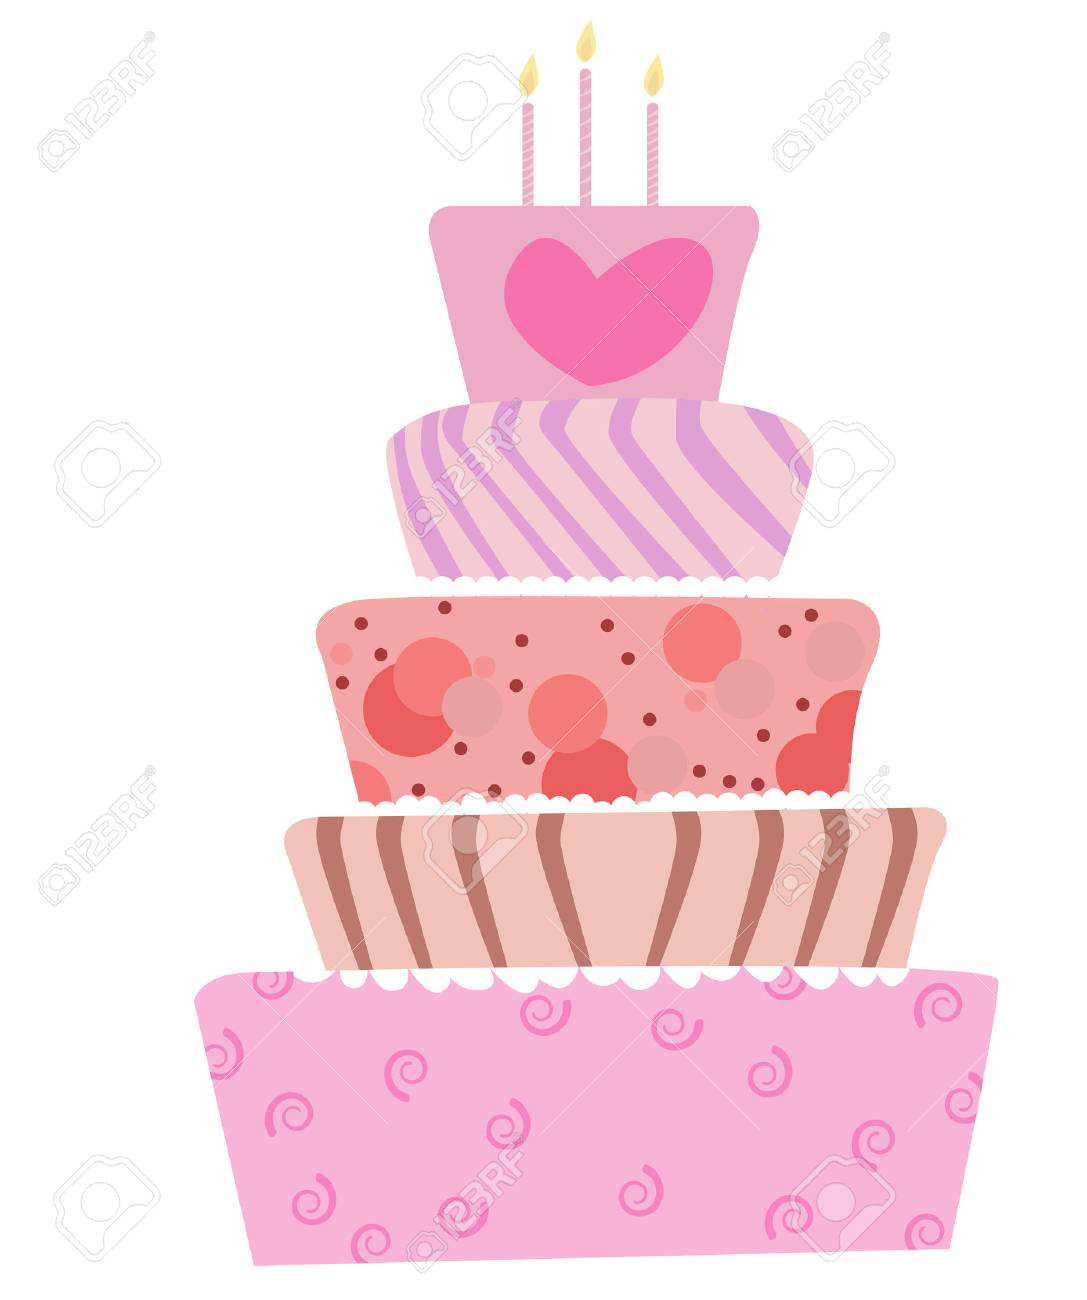 illustration of a cute cake for birthday or wedding Stock Vector - 6364254